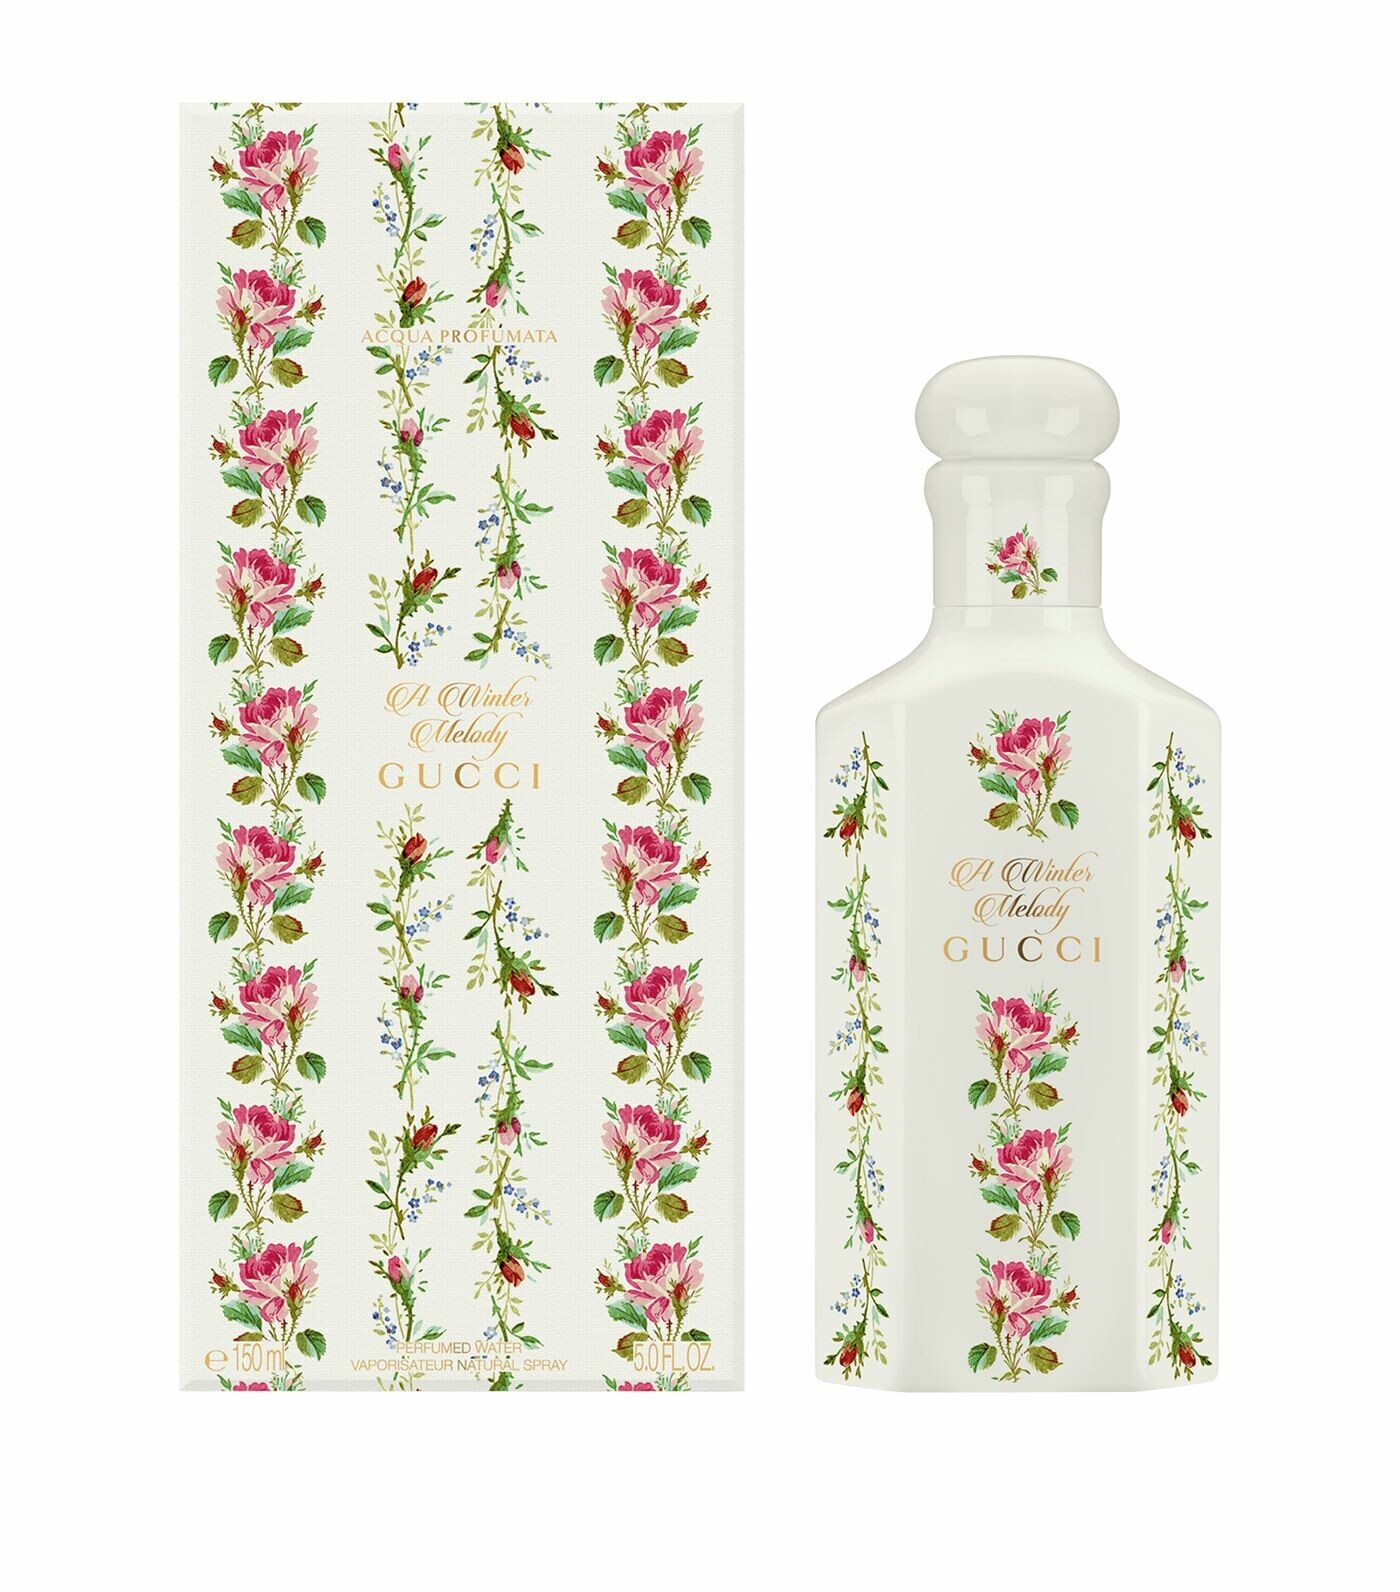 Ароматическая вода 150 мл Gucci A Winter Melody Scented Water